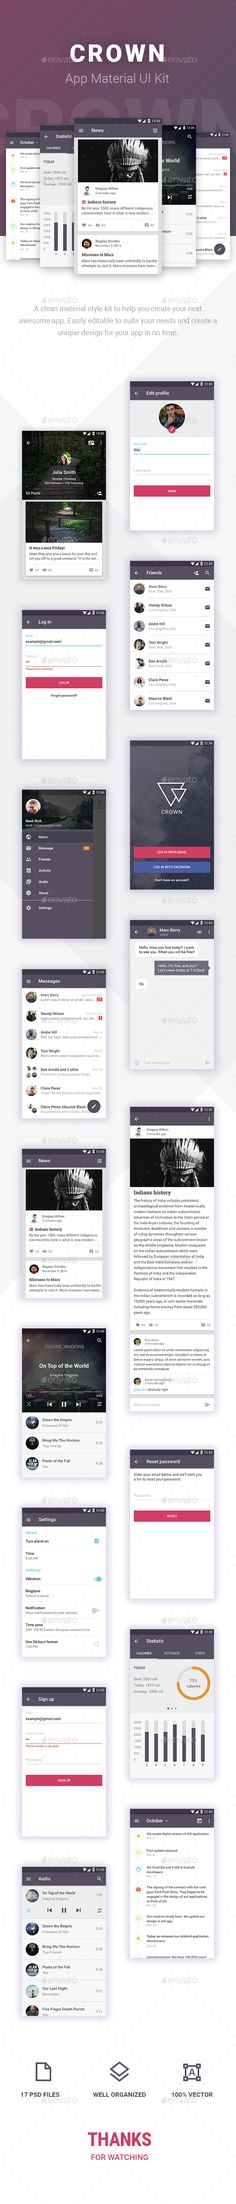 Crown Android Material UI Kit (User Interfaces)